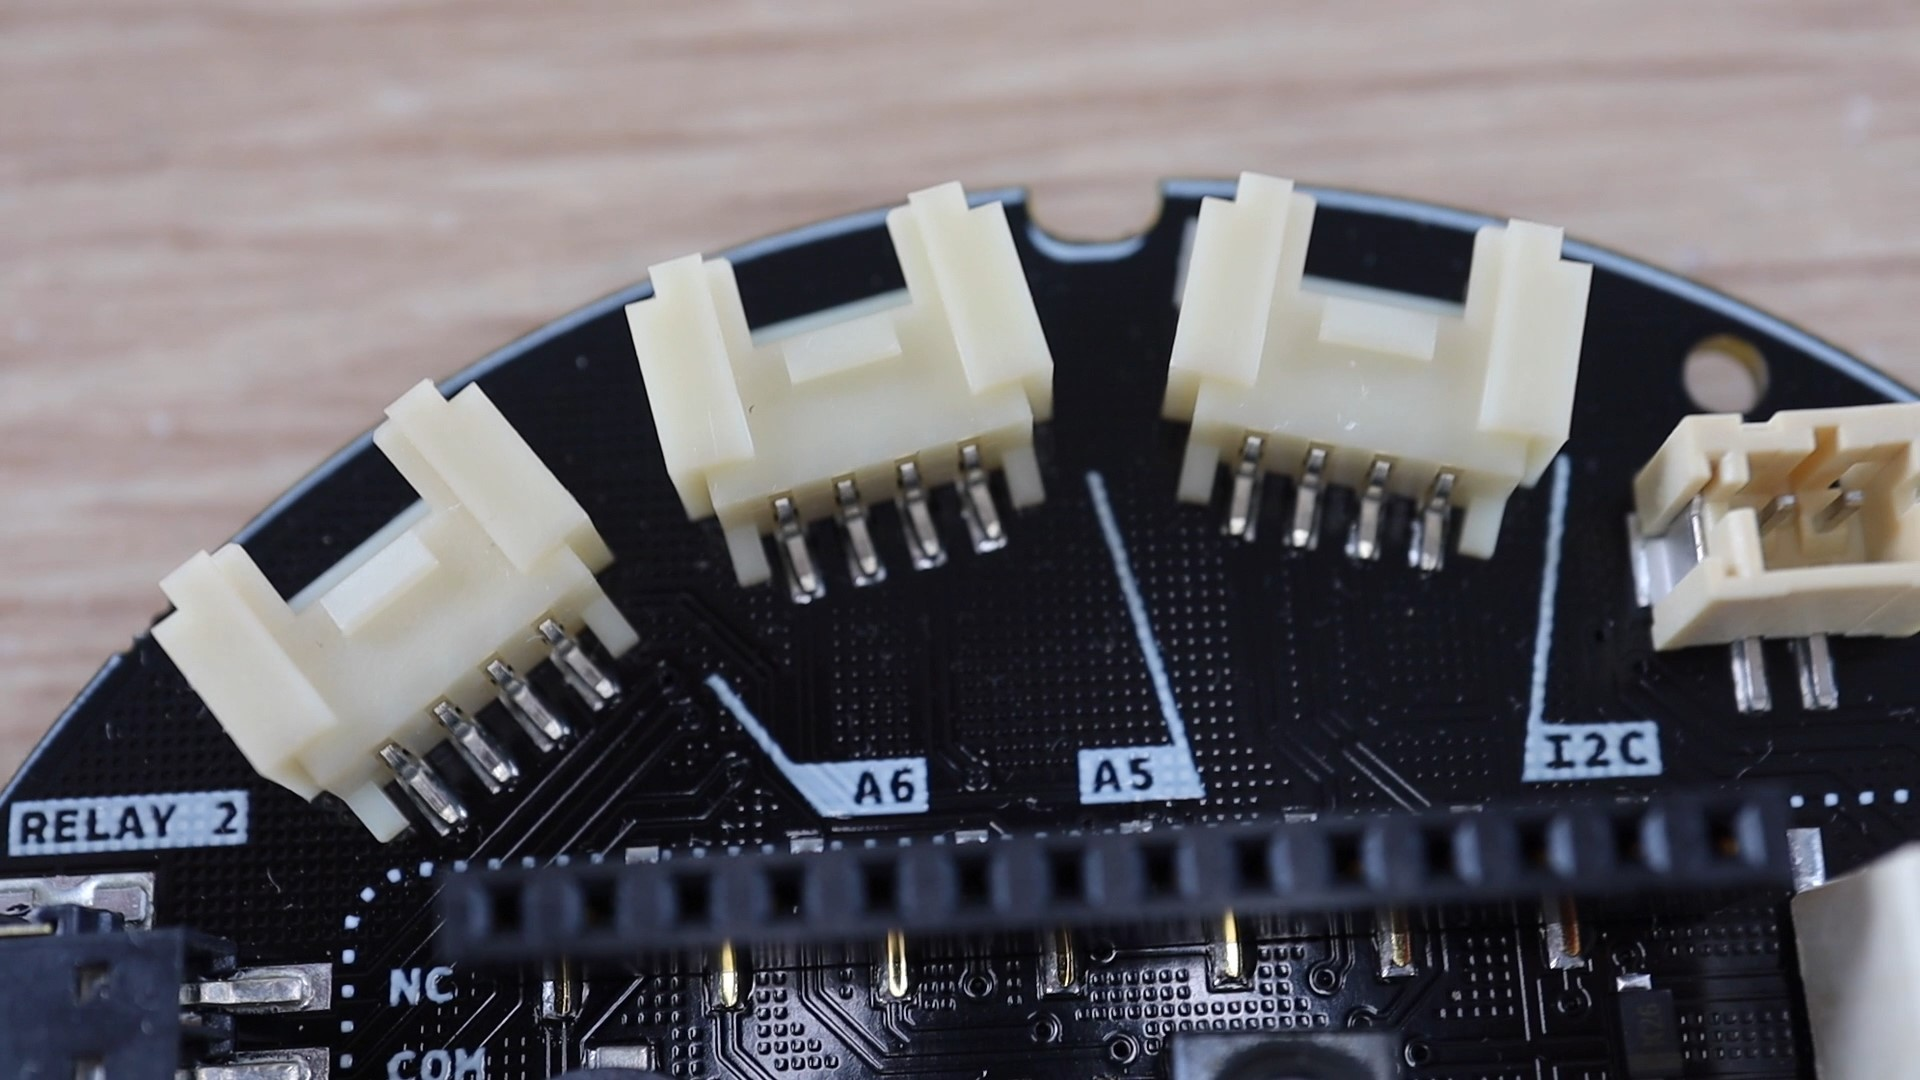 Plugs or Ports For Sensors